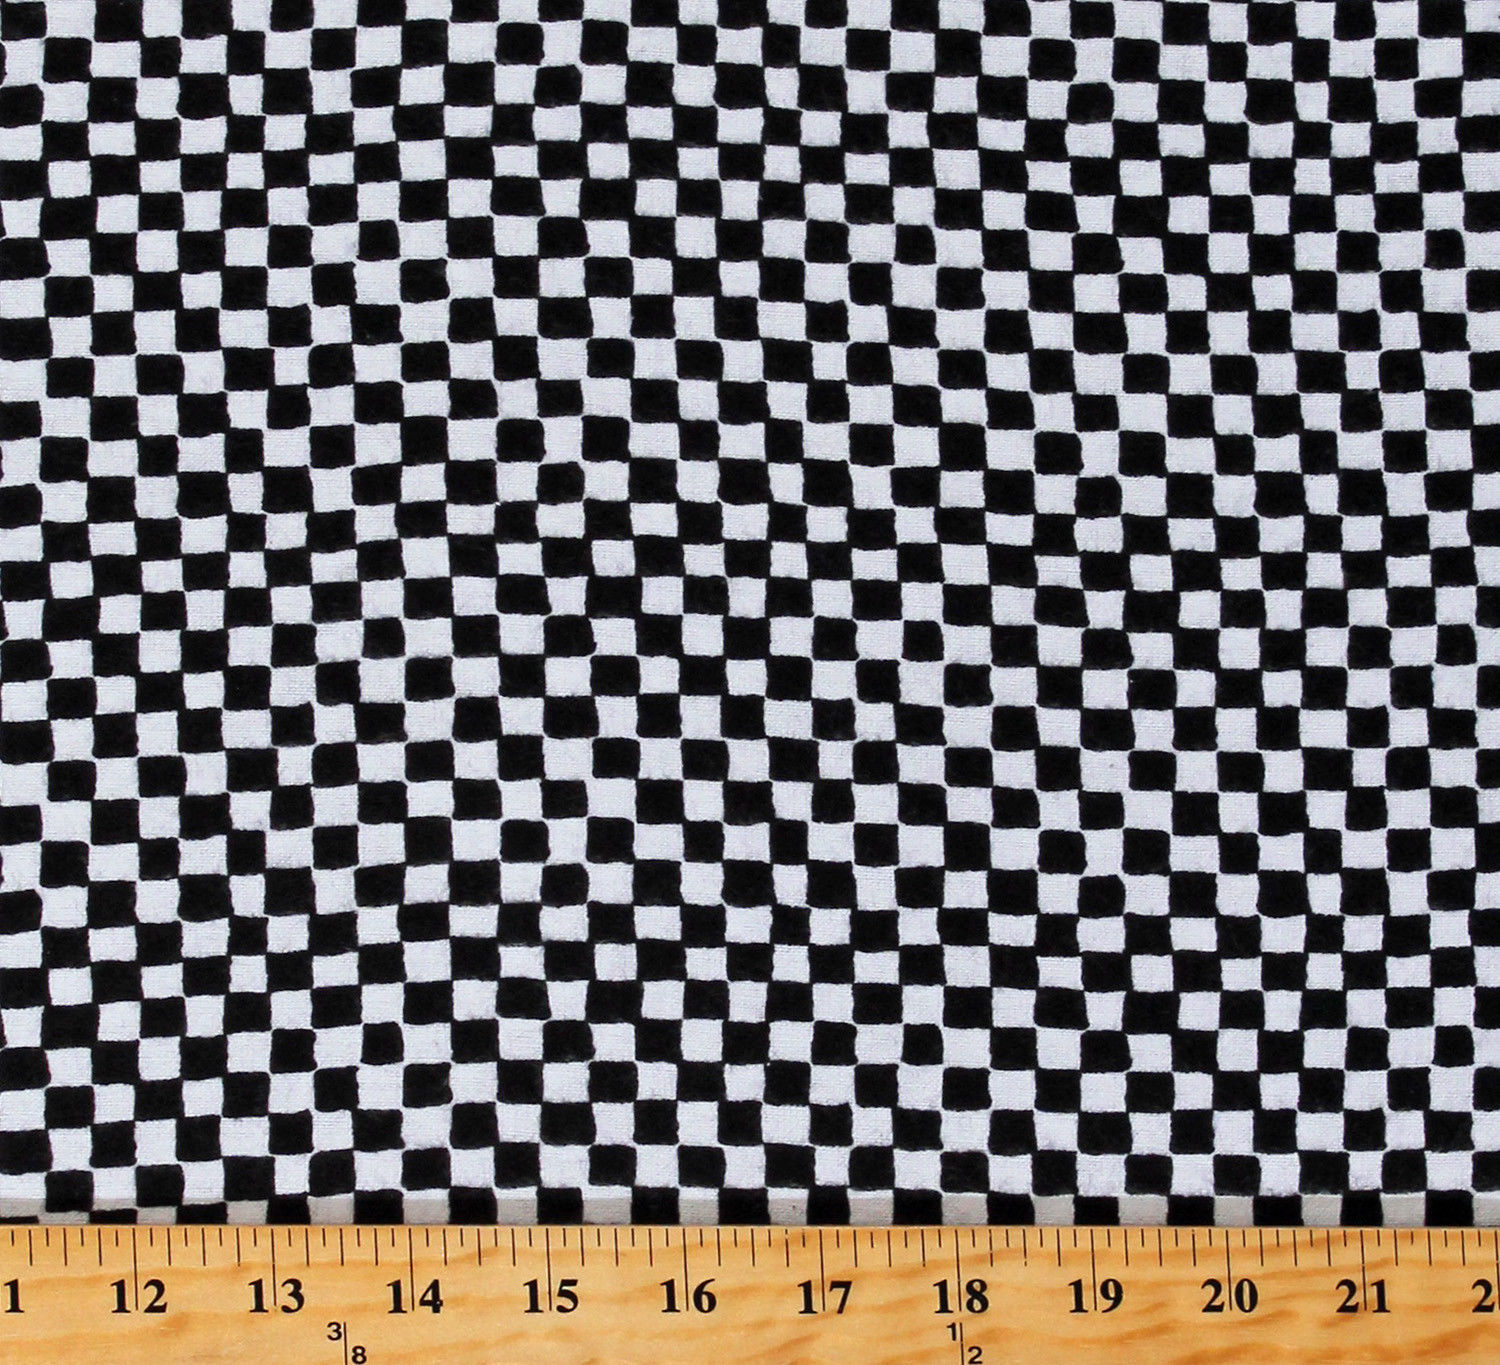 Flannel Clown Check Black & White Checkered Cotton Flannel Fabric Print D280.41